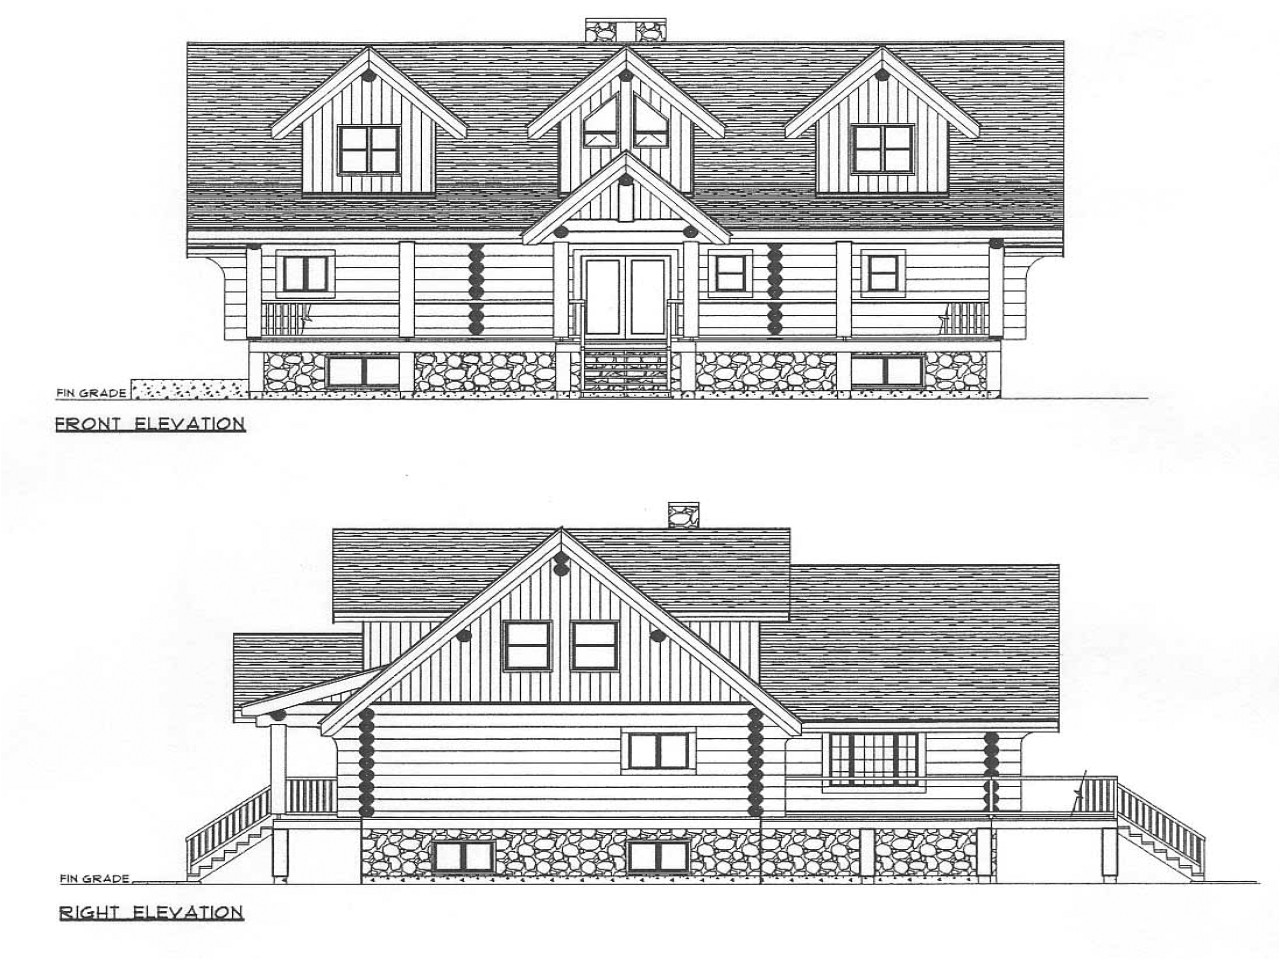 0a407b959e9e9a57 house plans free pdf free printable house blueprints